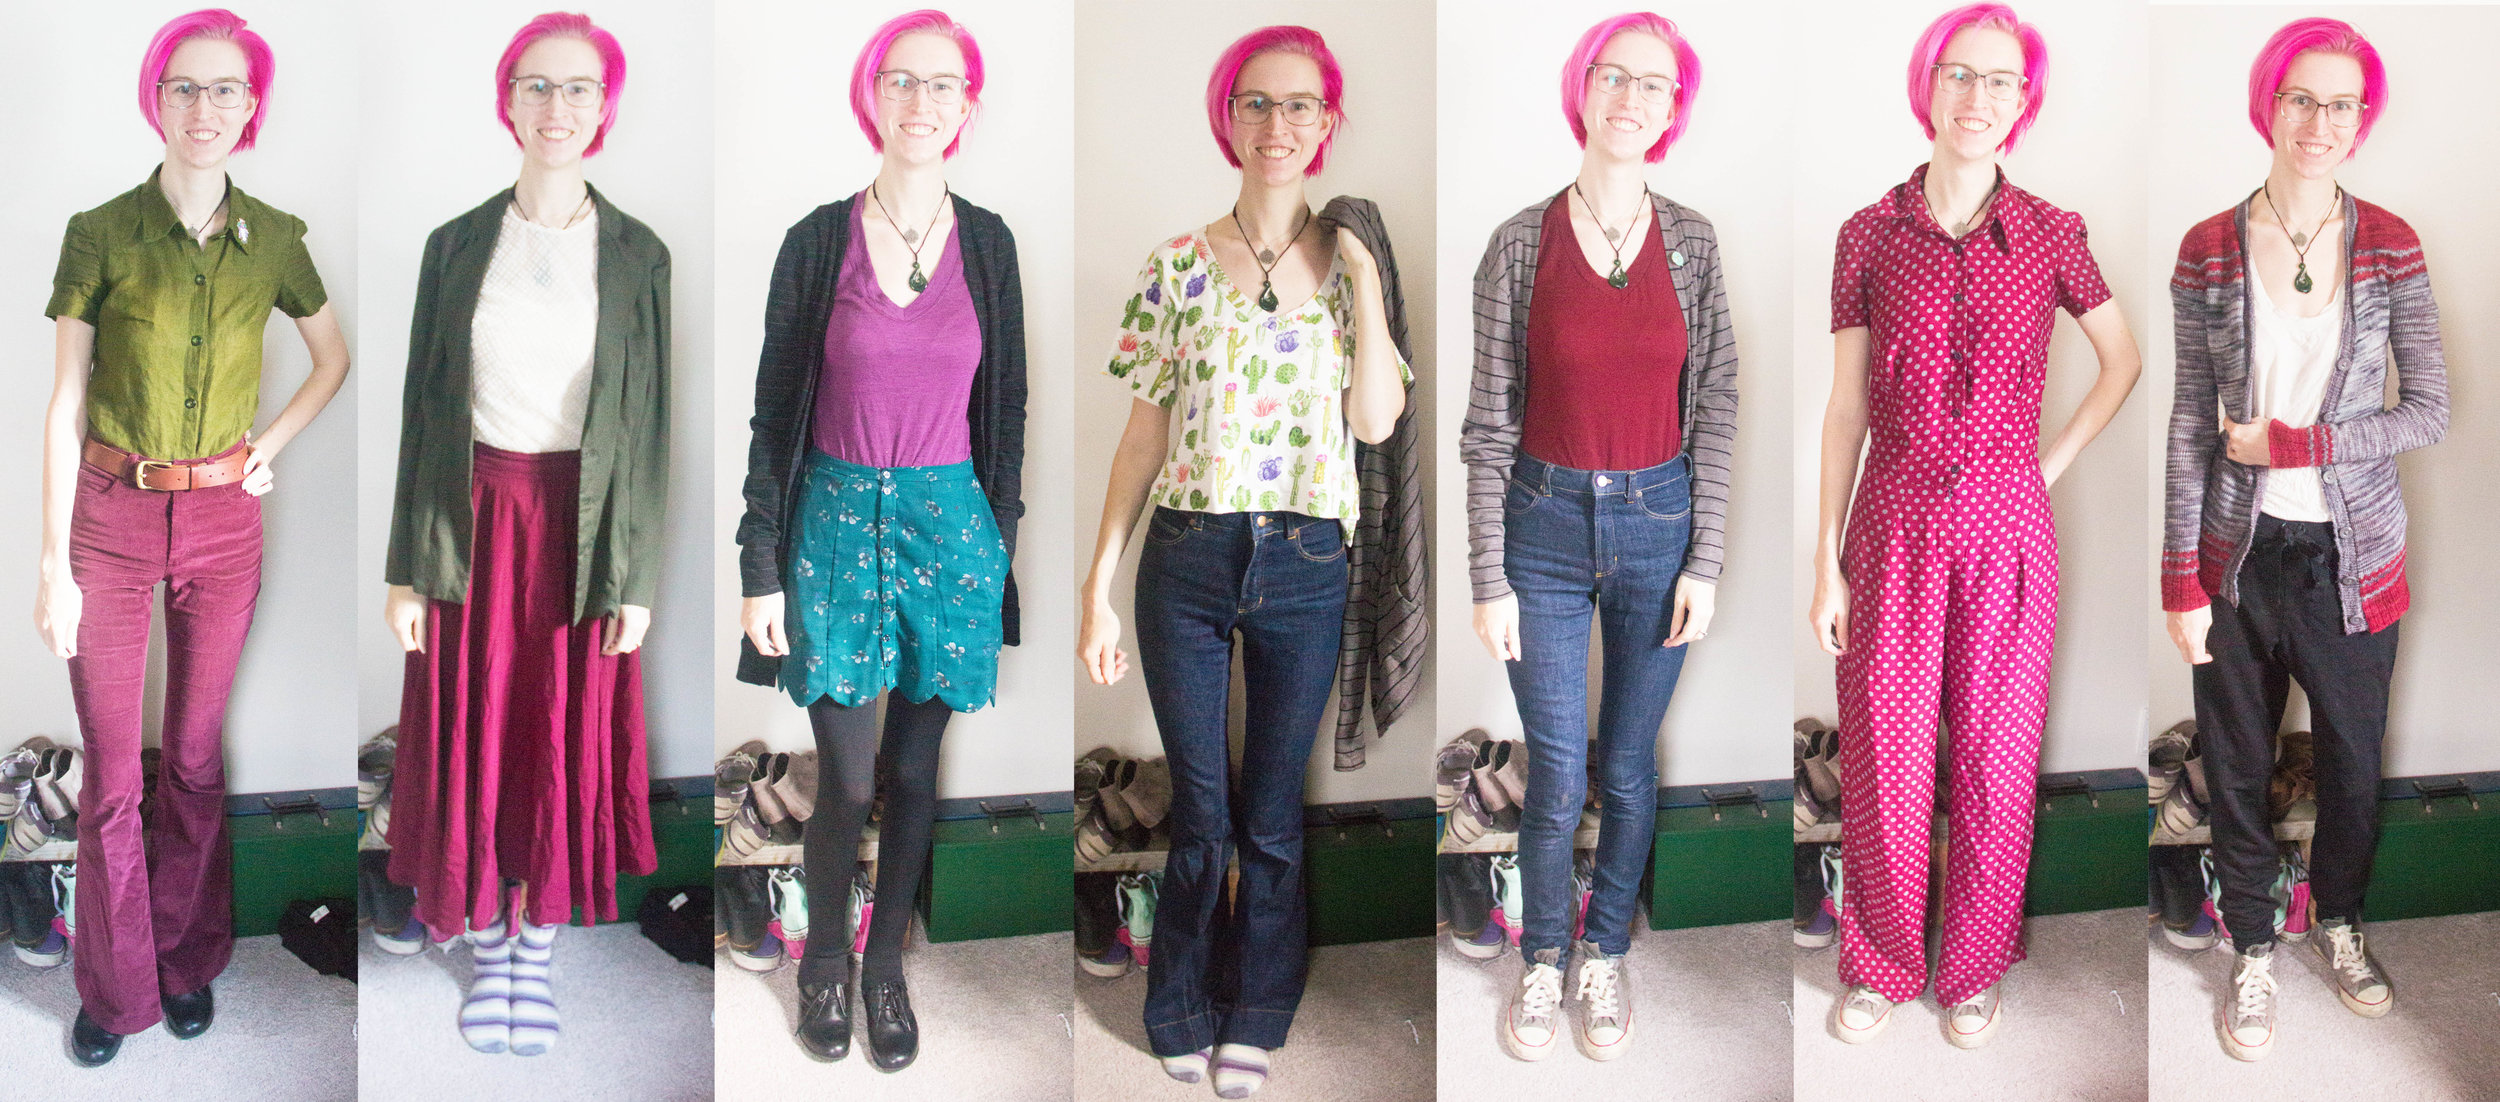 (Week two was my best-looking week, I think. So you get to see it first!)